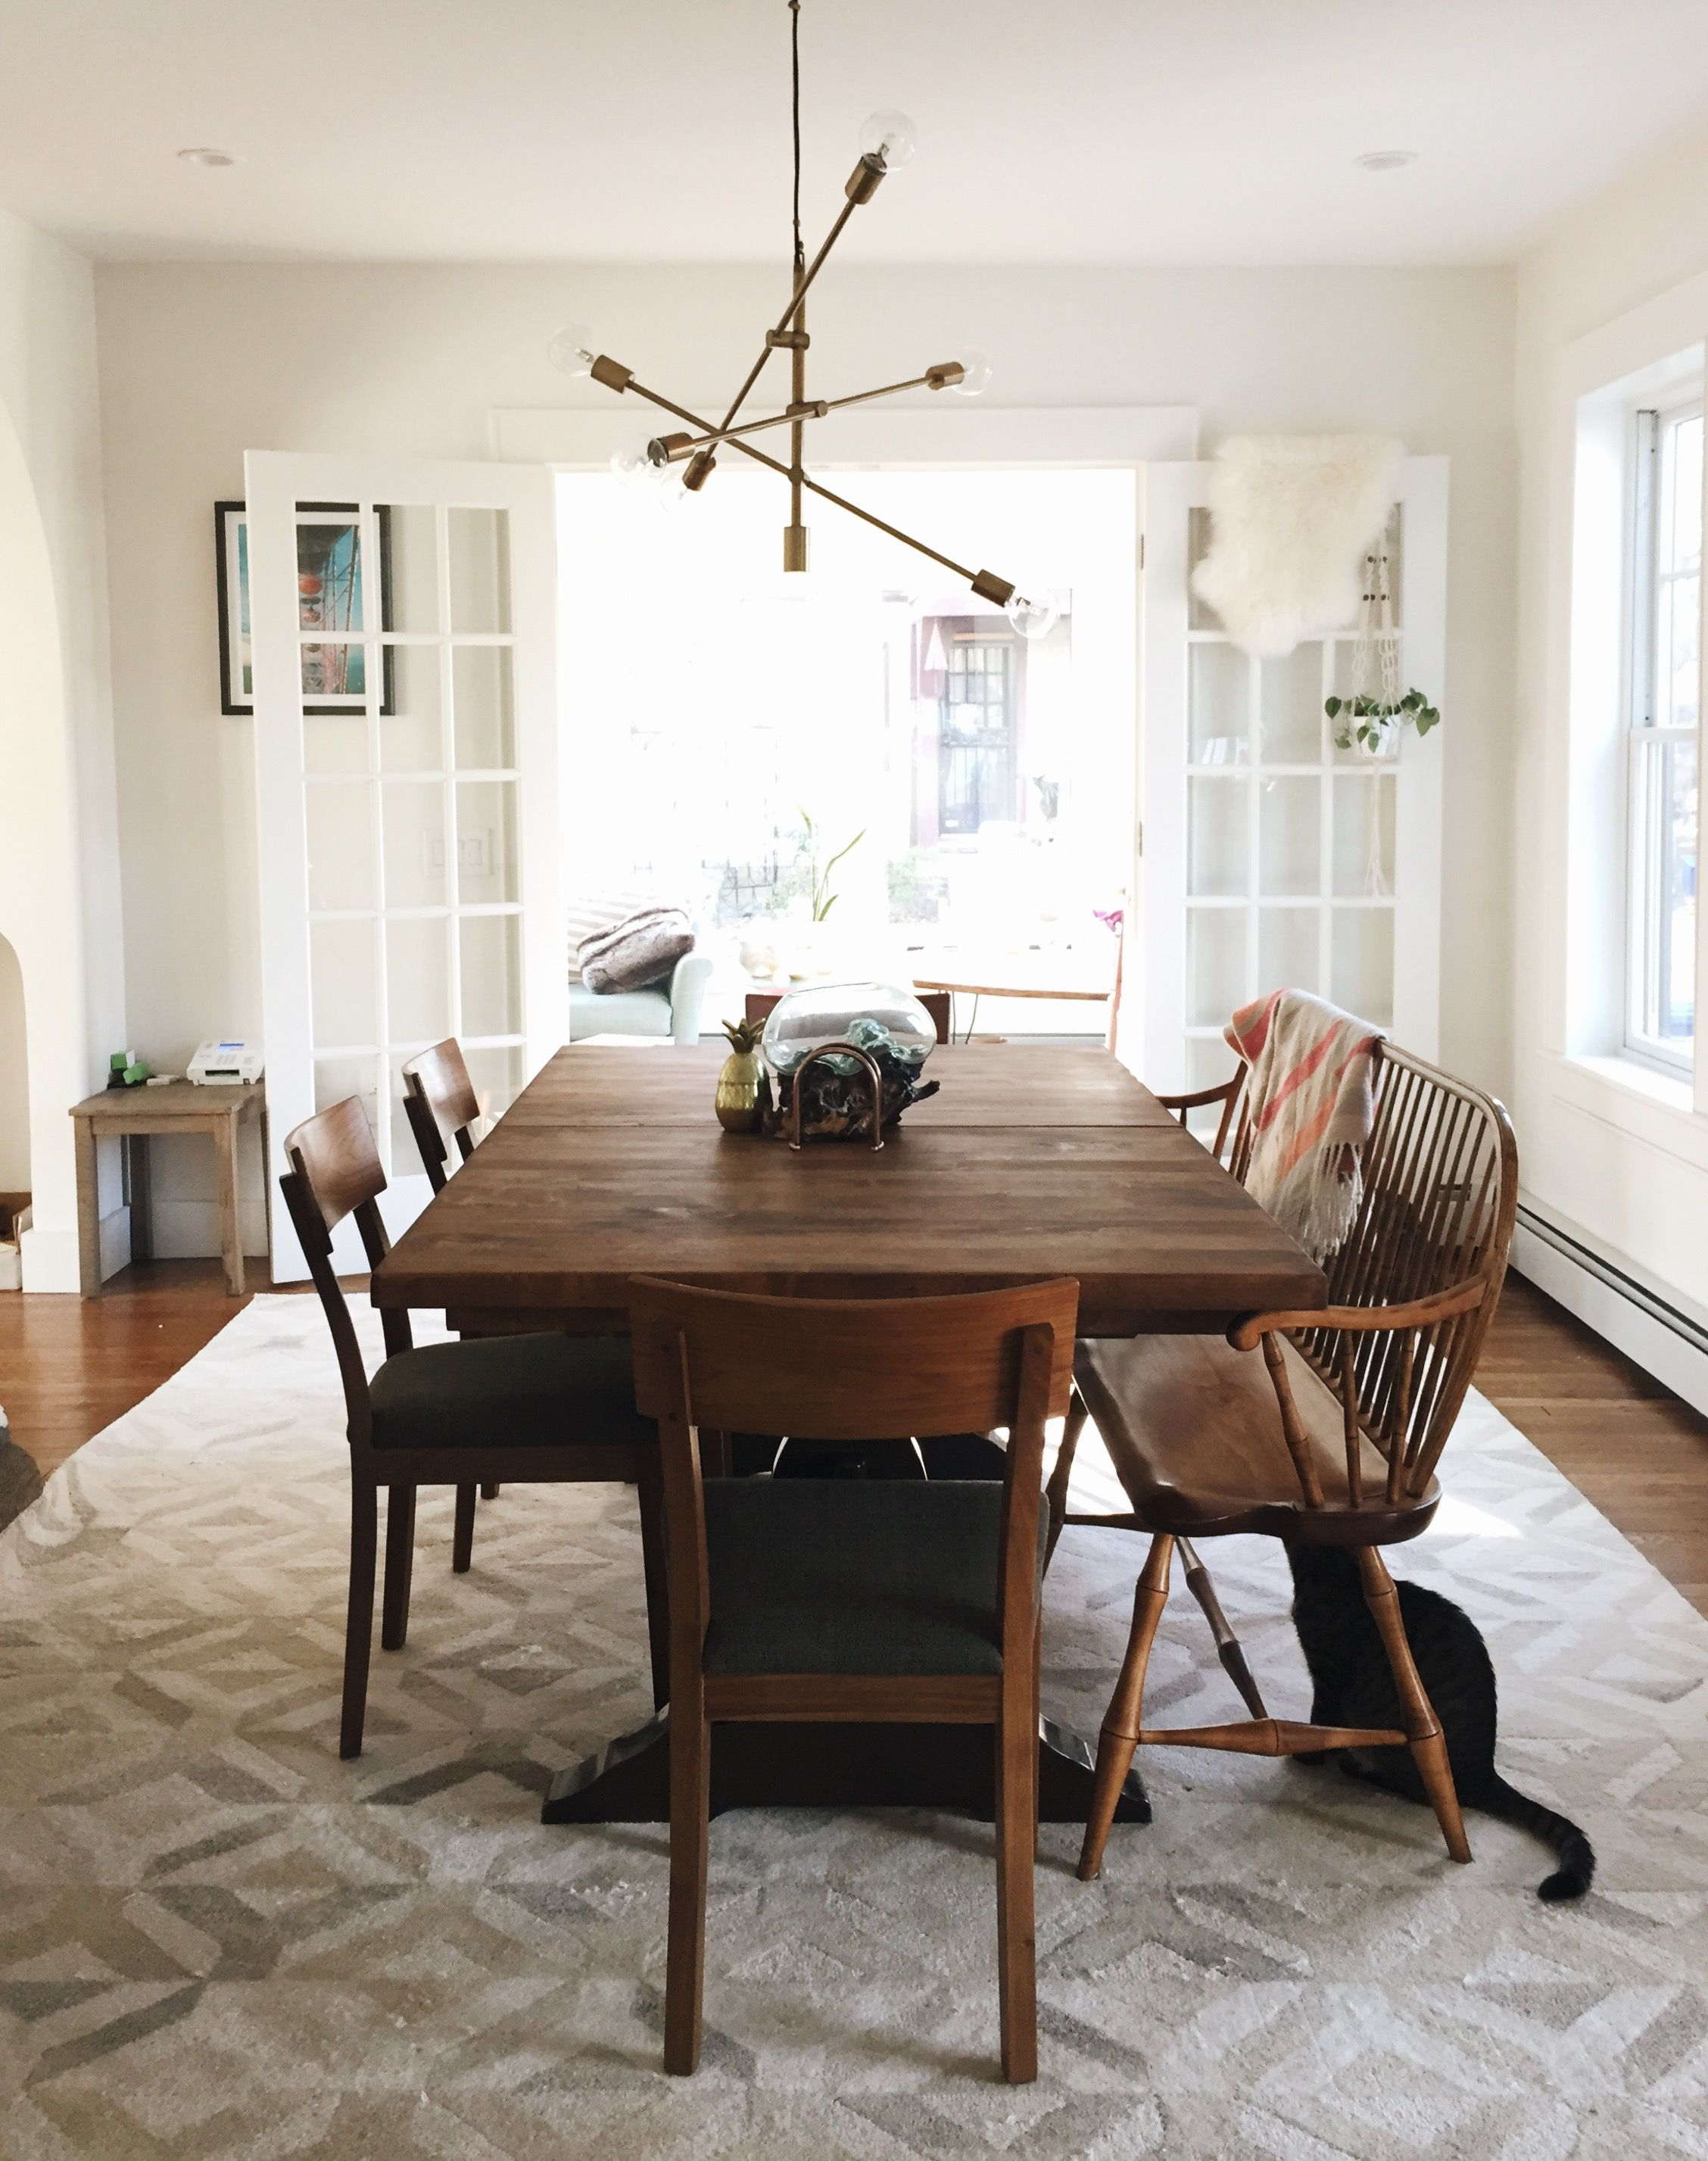 Autberry 5 Piece Dining Sets Inside Most Recent Our Dining Room! West Elm Marquis Rug West Elm Mobile Pendant (View 17 of 25)